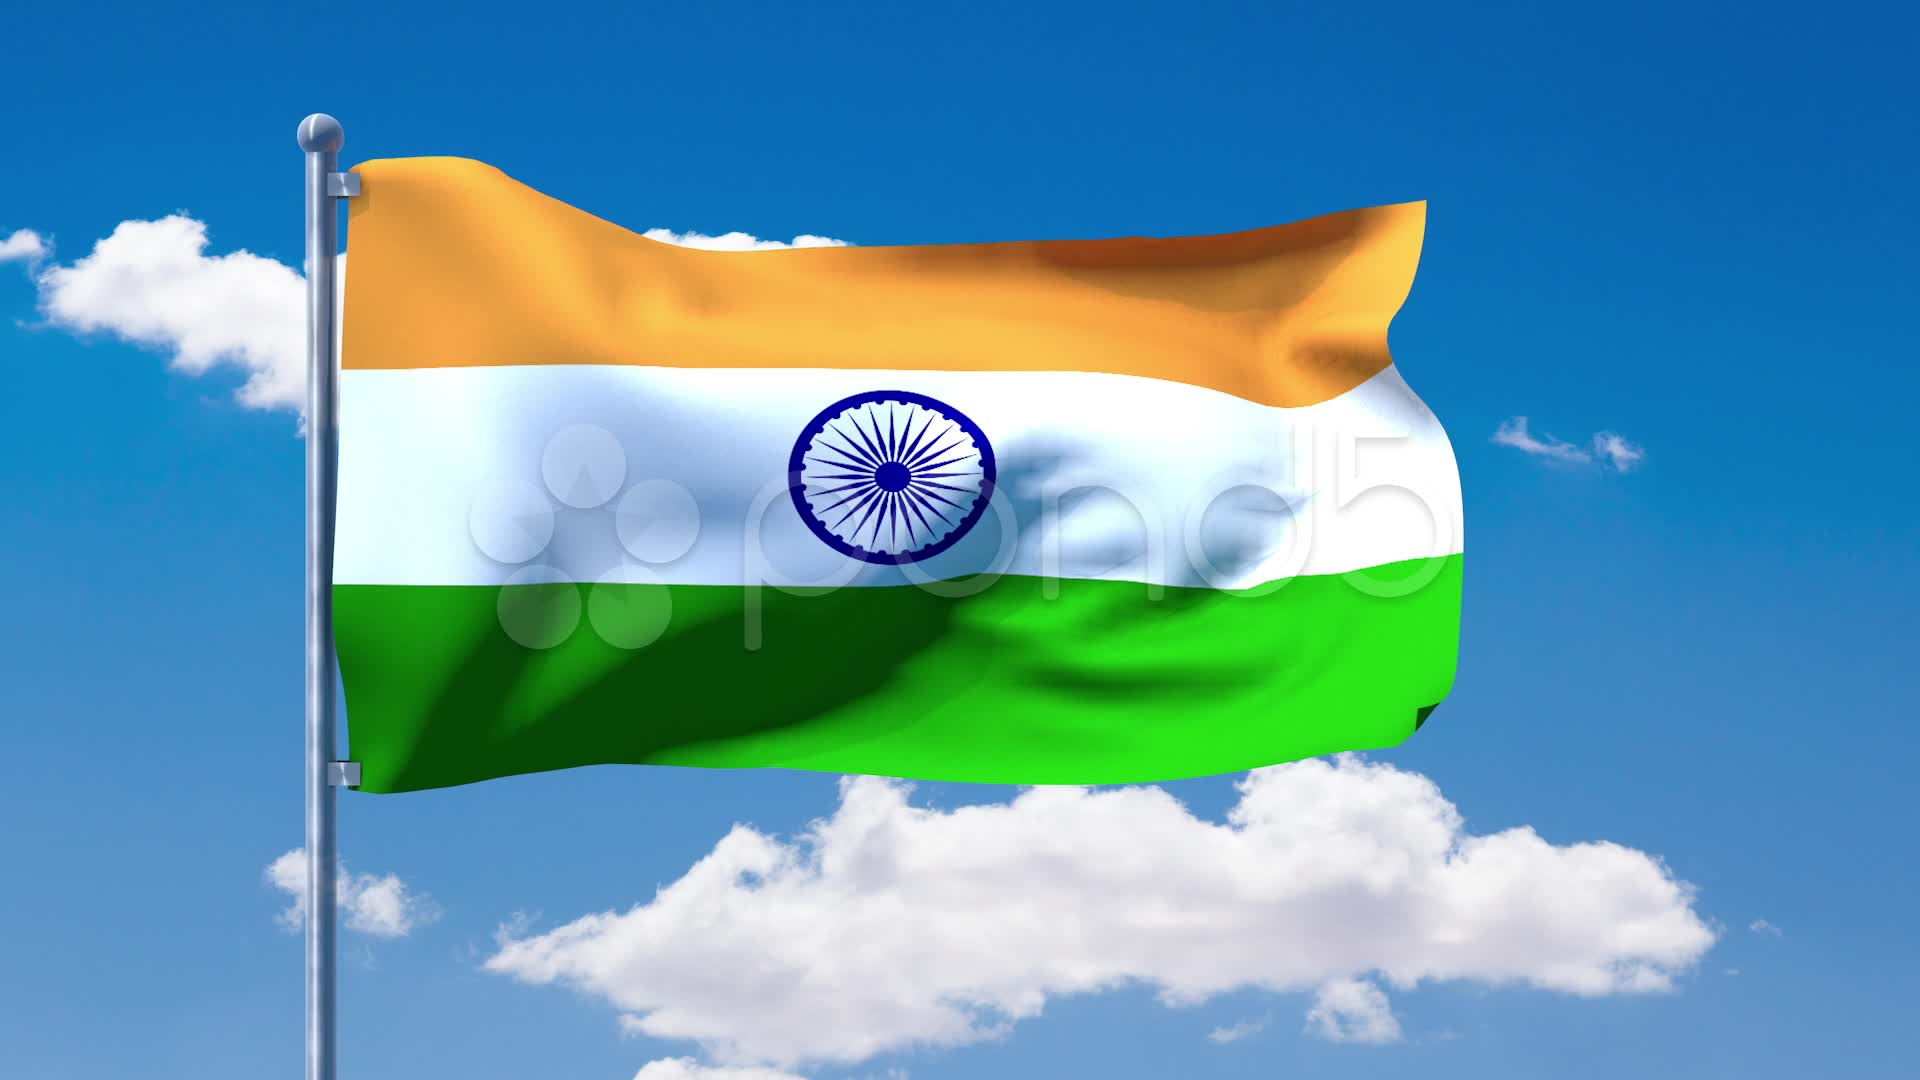 Indian Flag Images Hd720p: Video: Indian Flag Waving Over A Blue Cloudy Sky